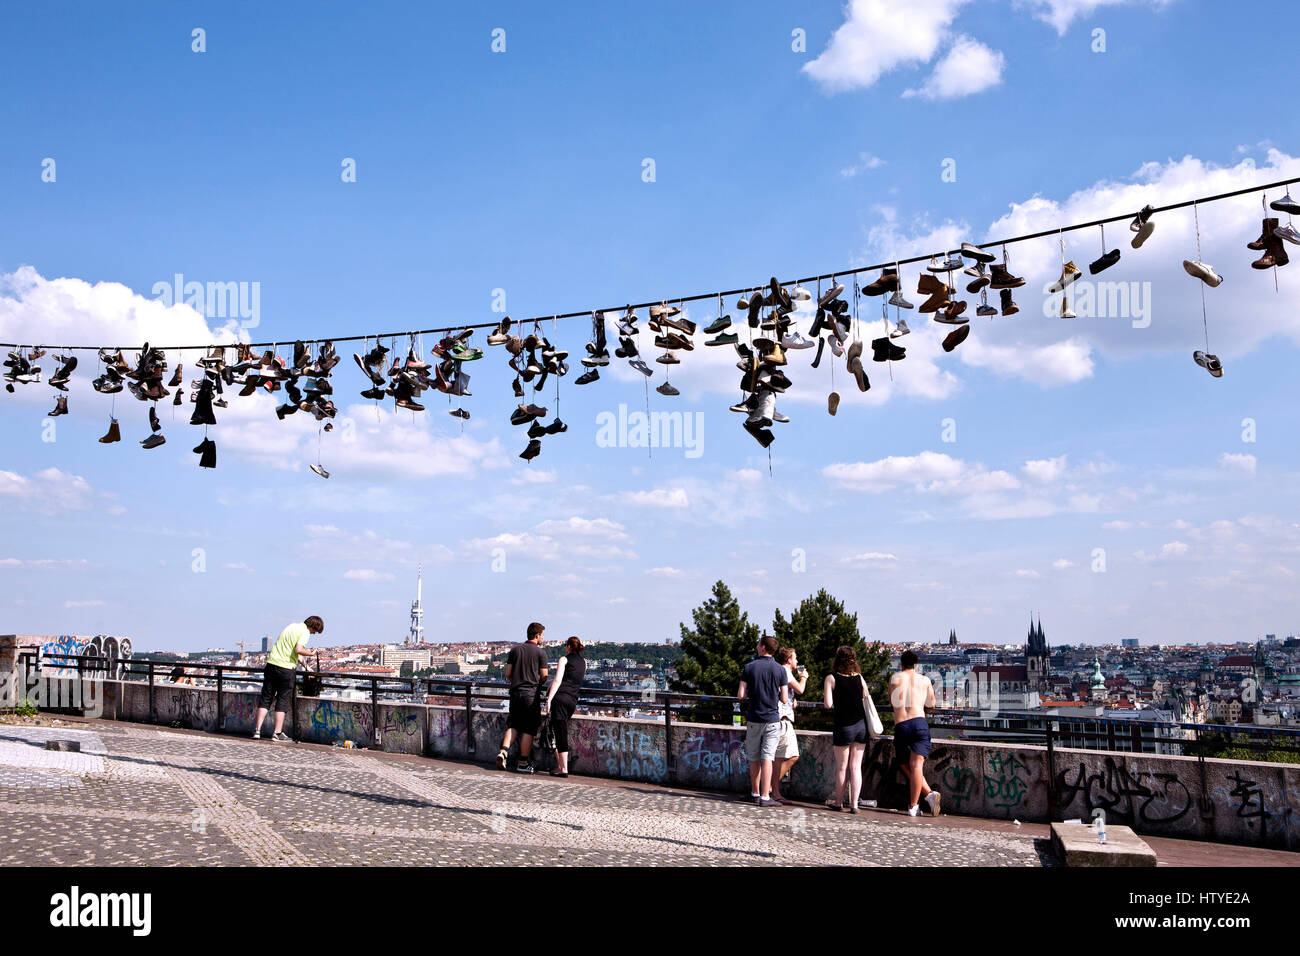 Shoe Tossing at the Prague Metronome in the Letna Park, Czech Republic. - Stock Image